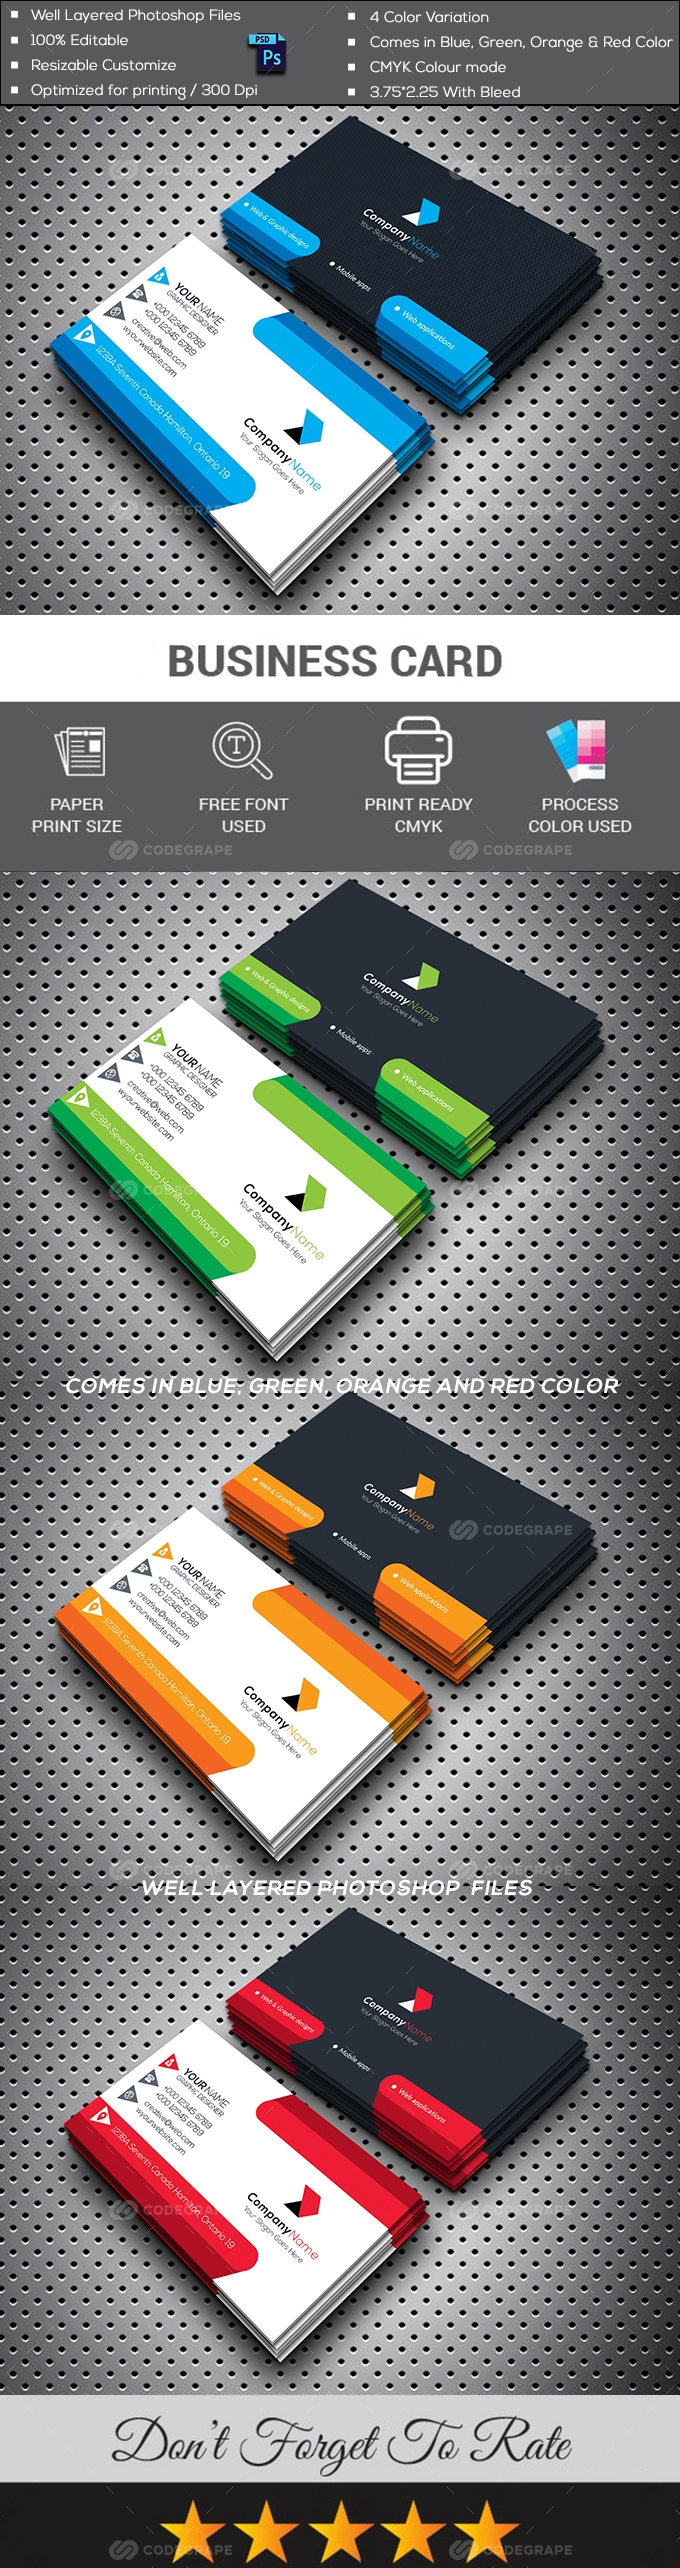 Professional Business Card v2